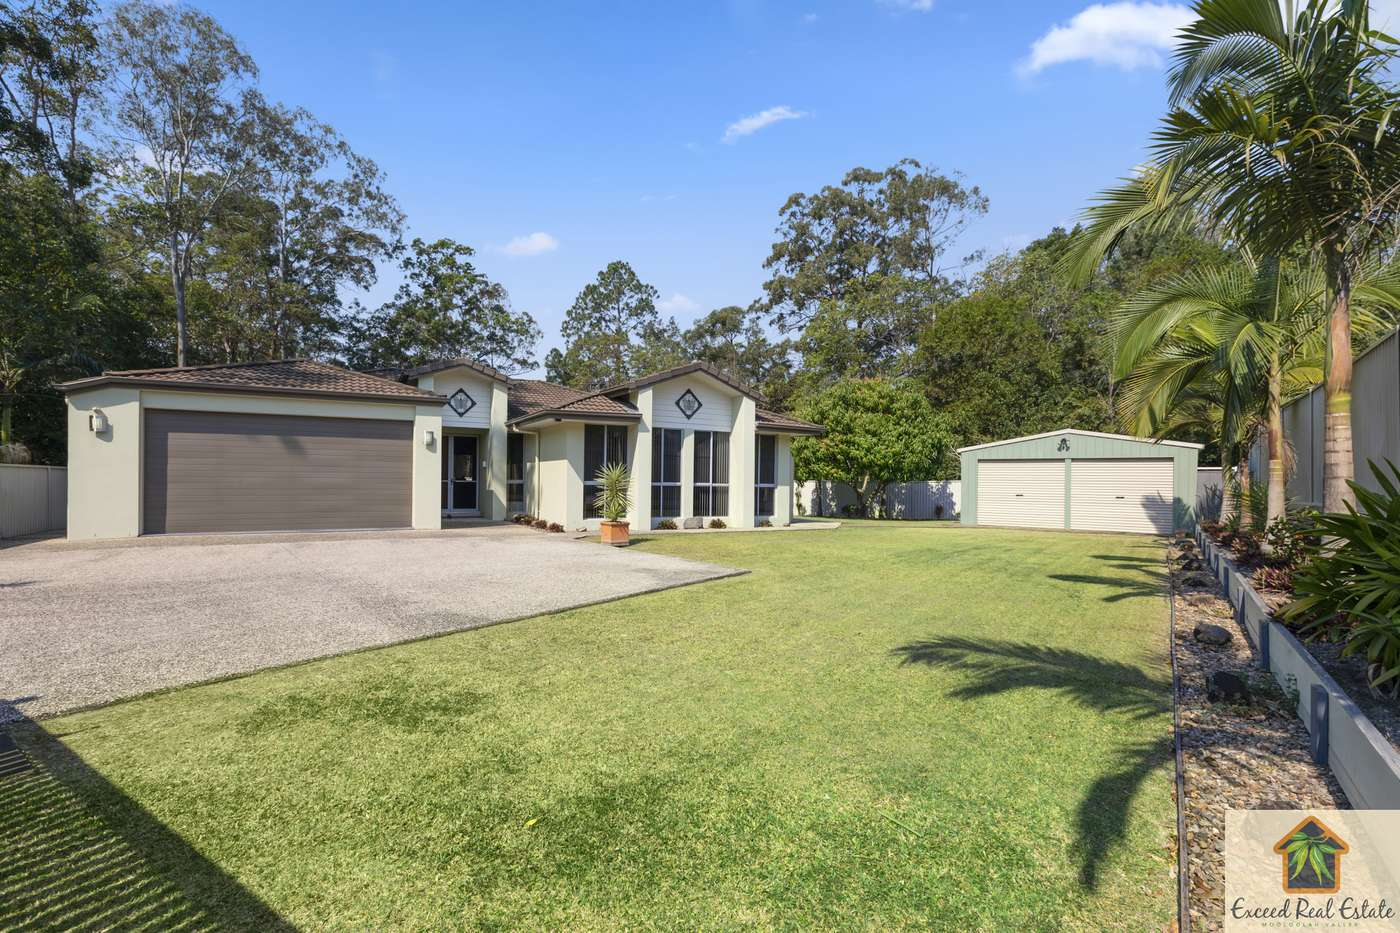 Main view of Homely house listing, 14 Treetop Ct, Mooloolah Valley, QLD 4553